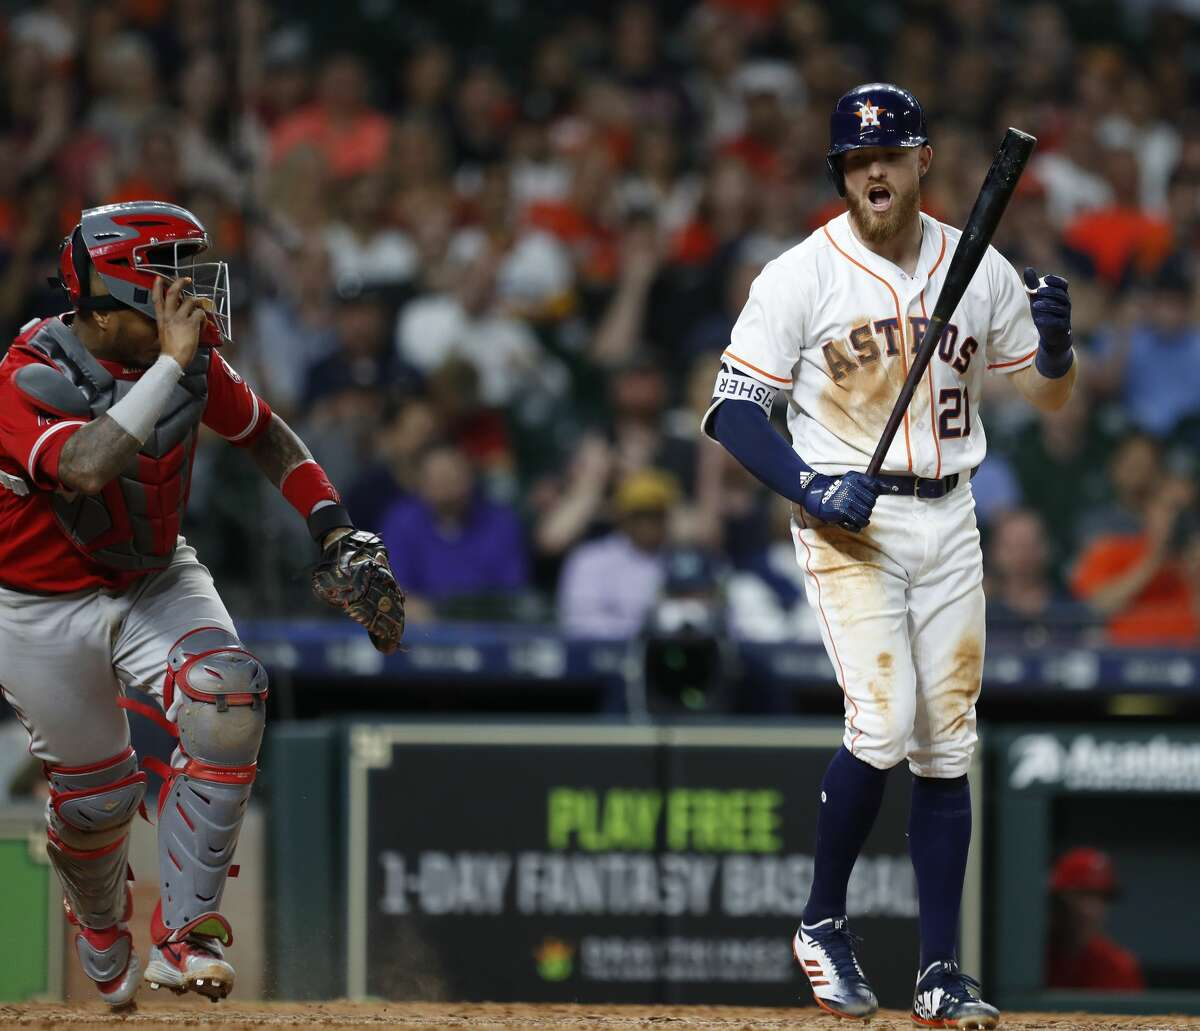 Houston Astros Derek Fisher (21) strikes out during the seventh inning of an MLB game at Minute Maid Park, Tuesday, April 24, 2018, in Houston. ( Karen Warren / Houston Chronicle )